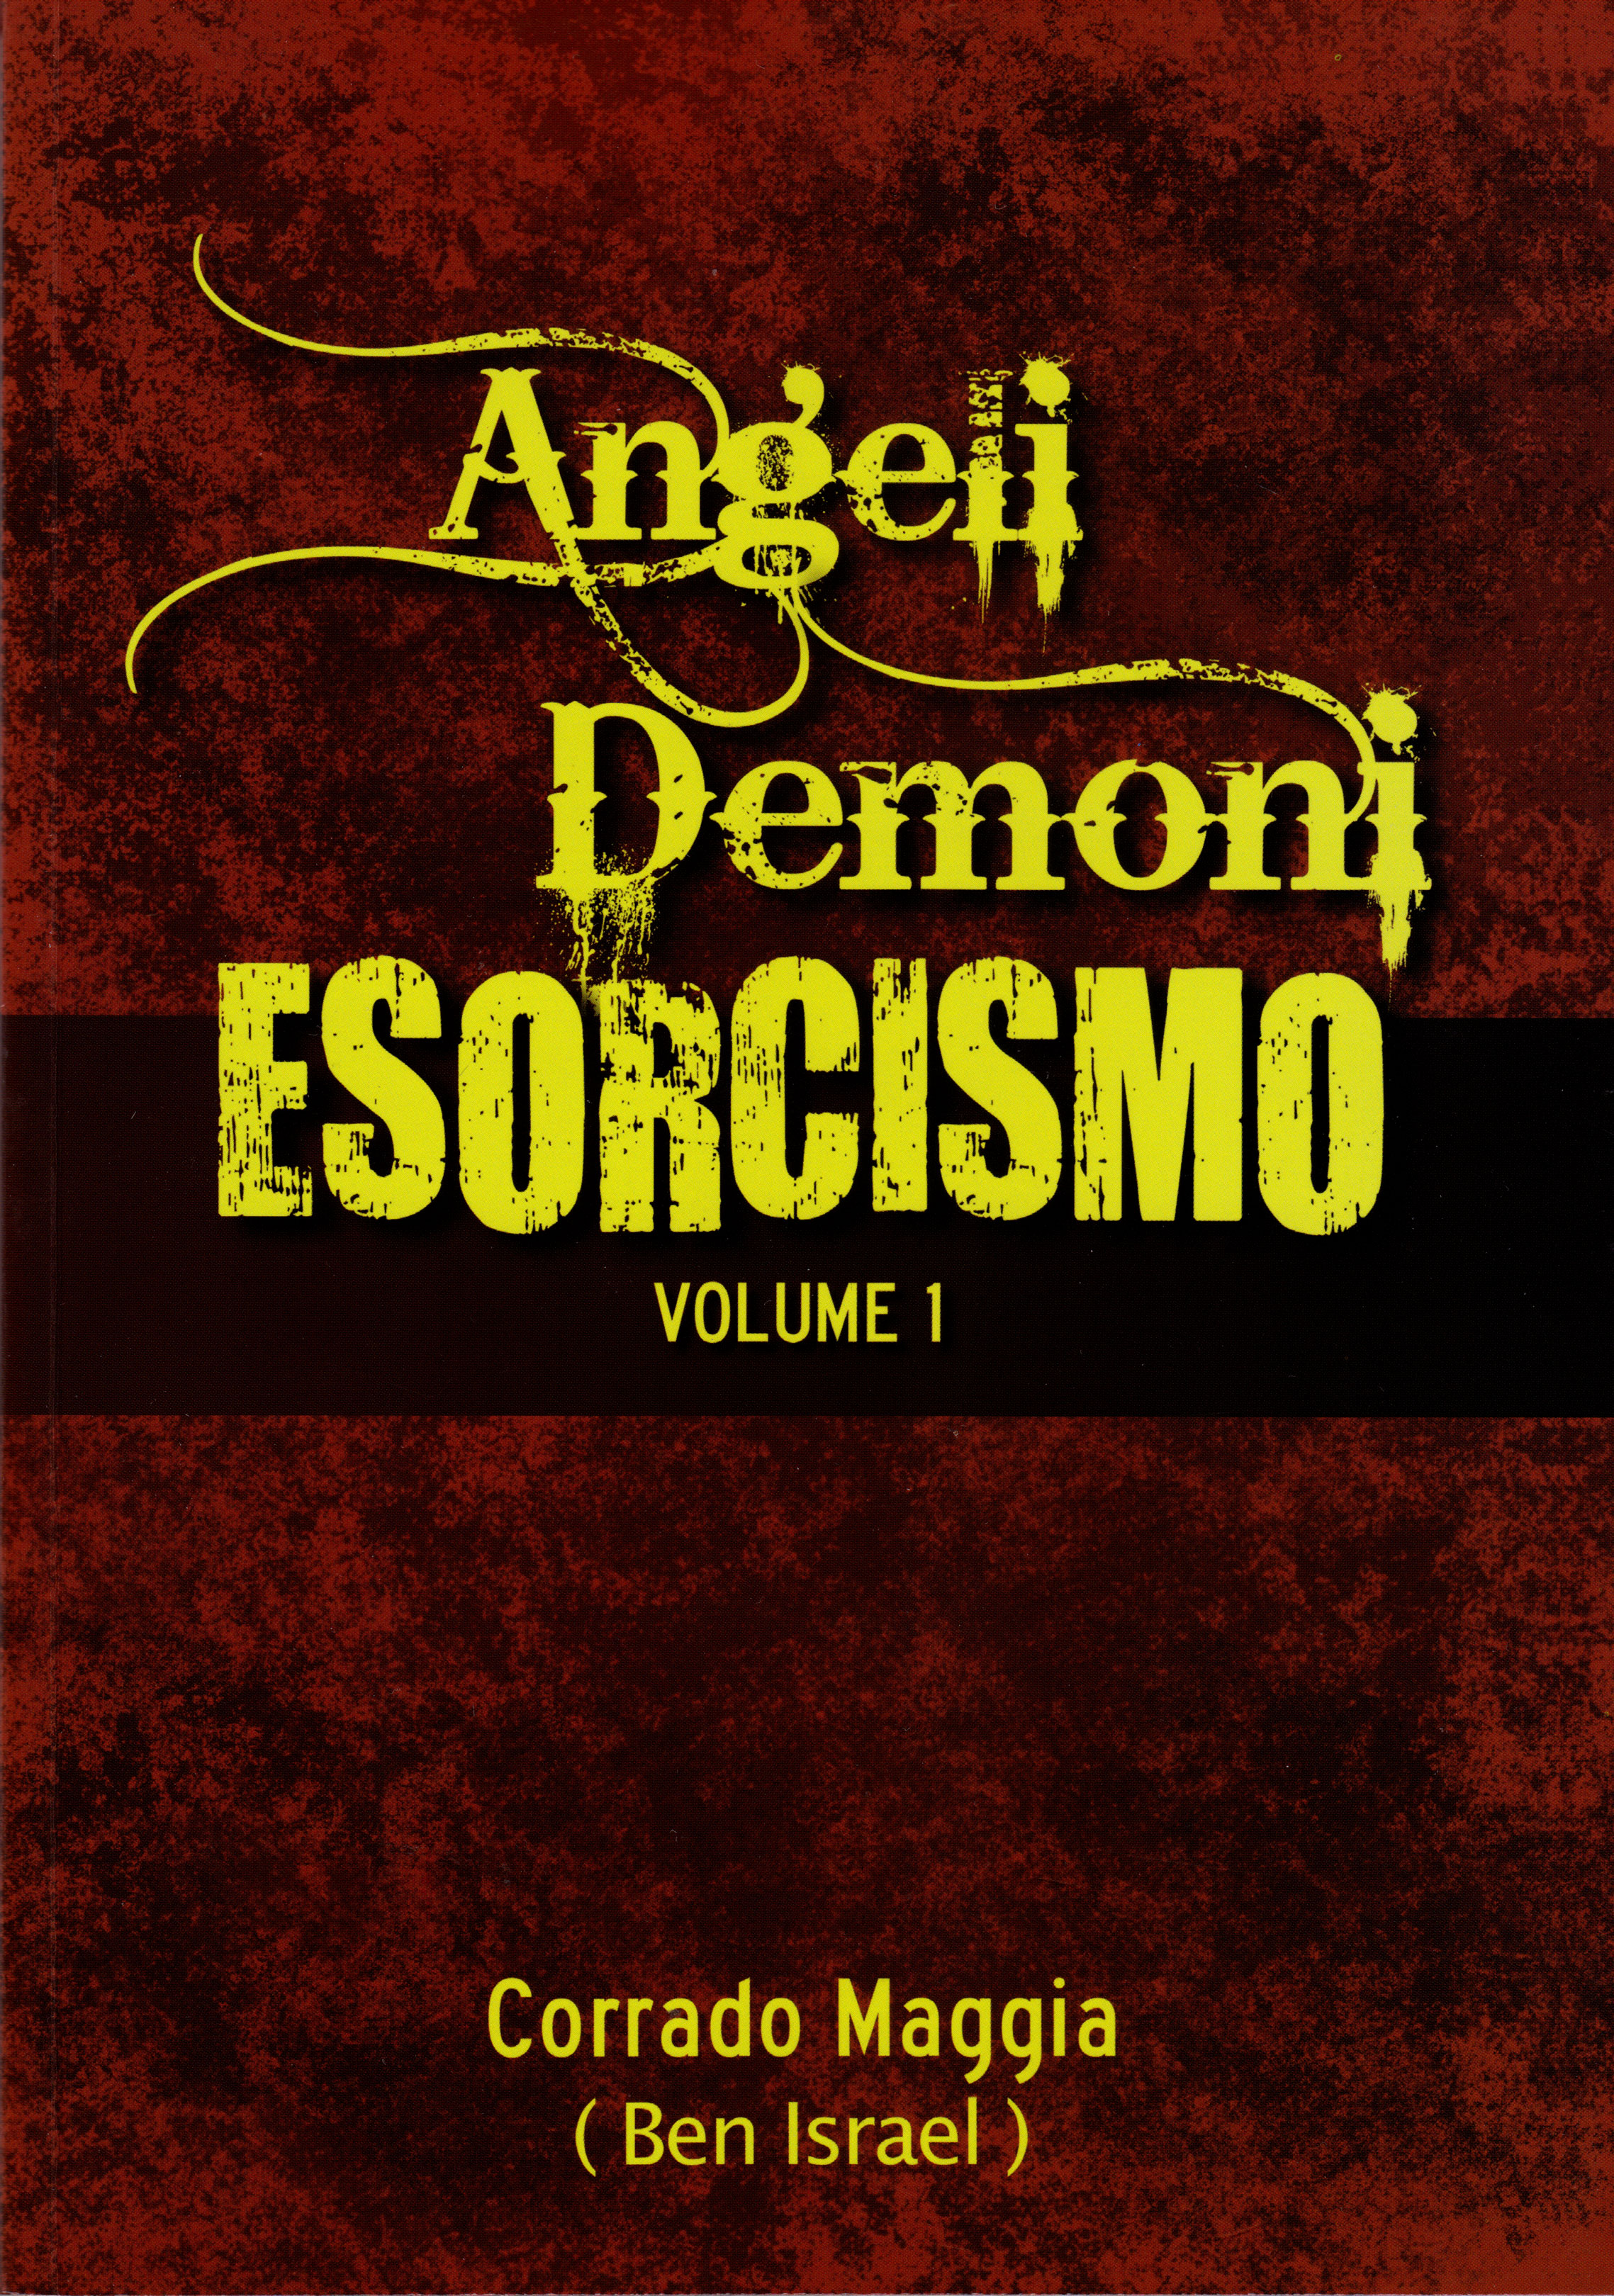 Angeli demoni esorcismo vol. 1